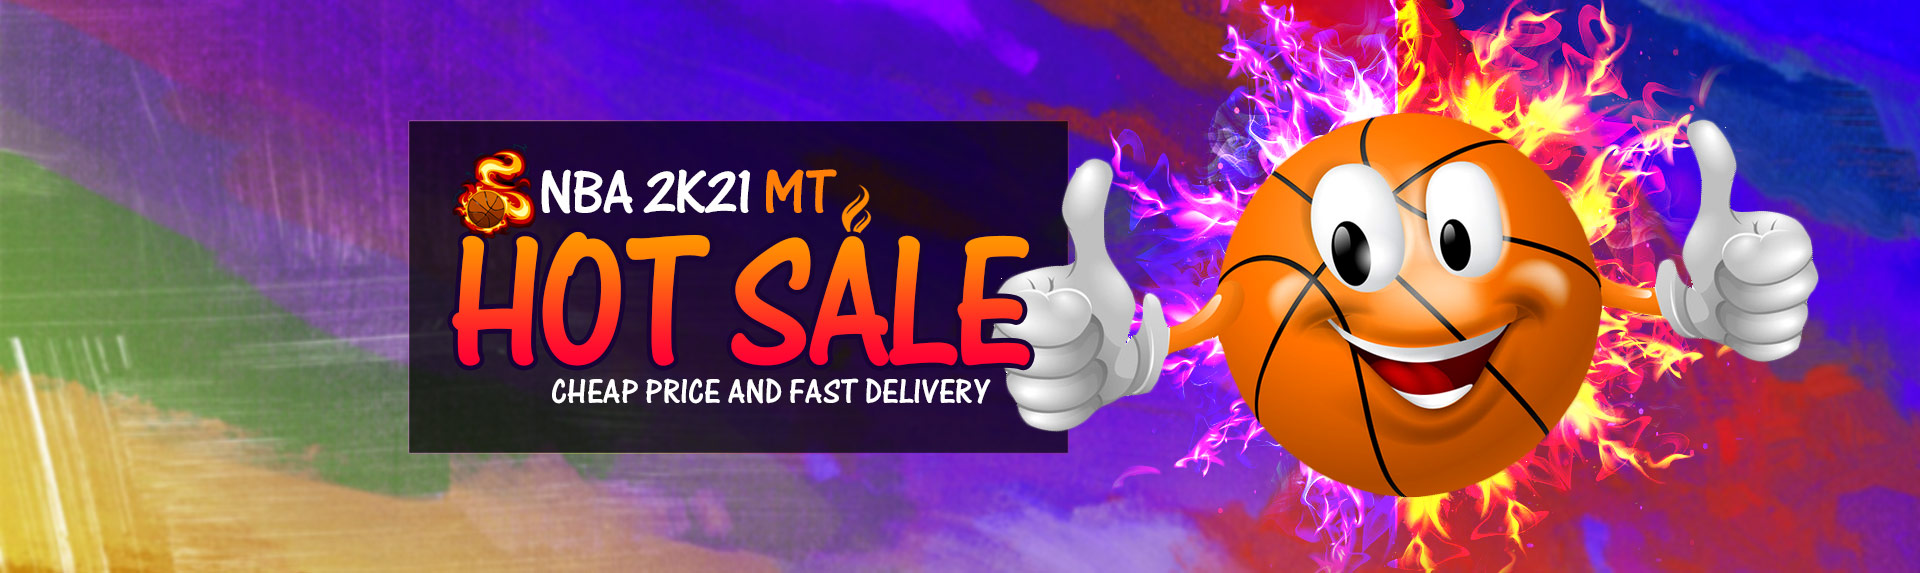 NBA 2K21 MT Hot Sale